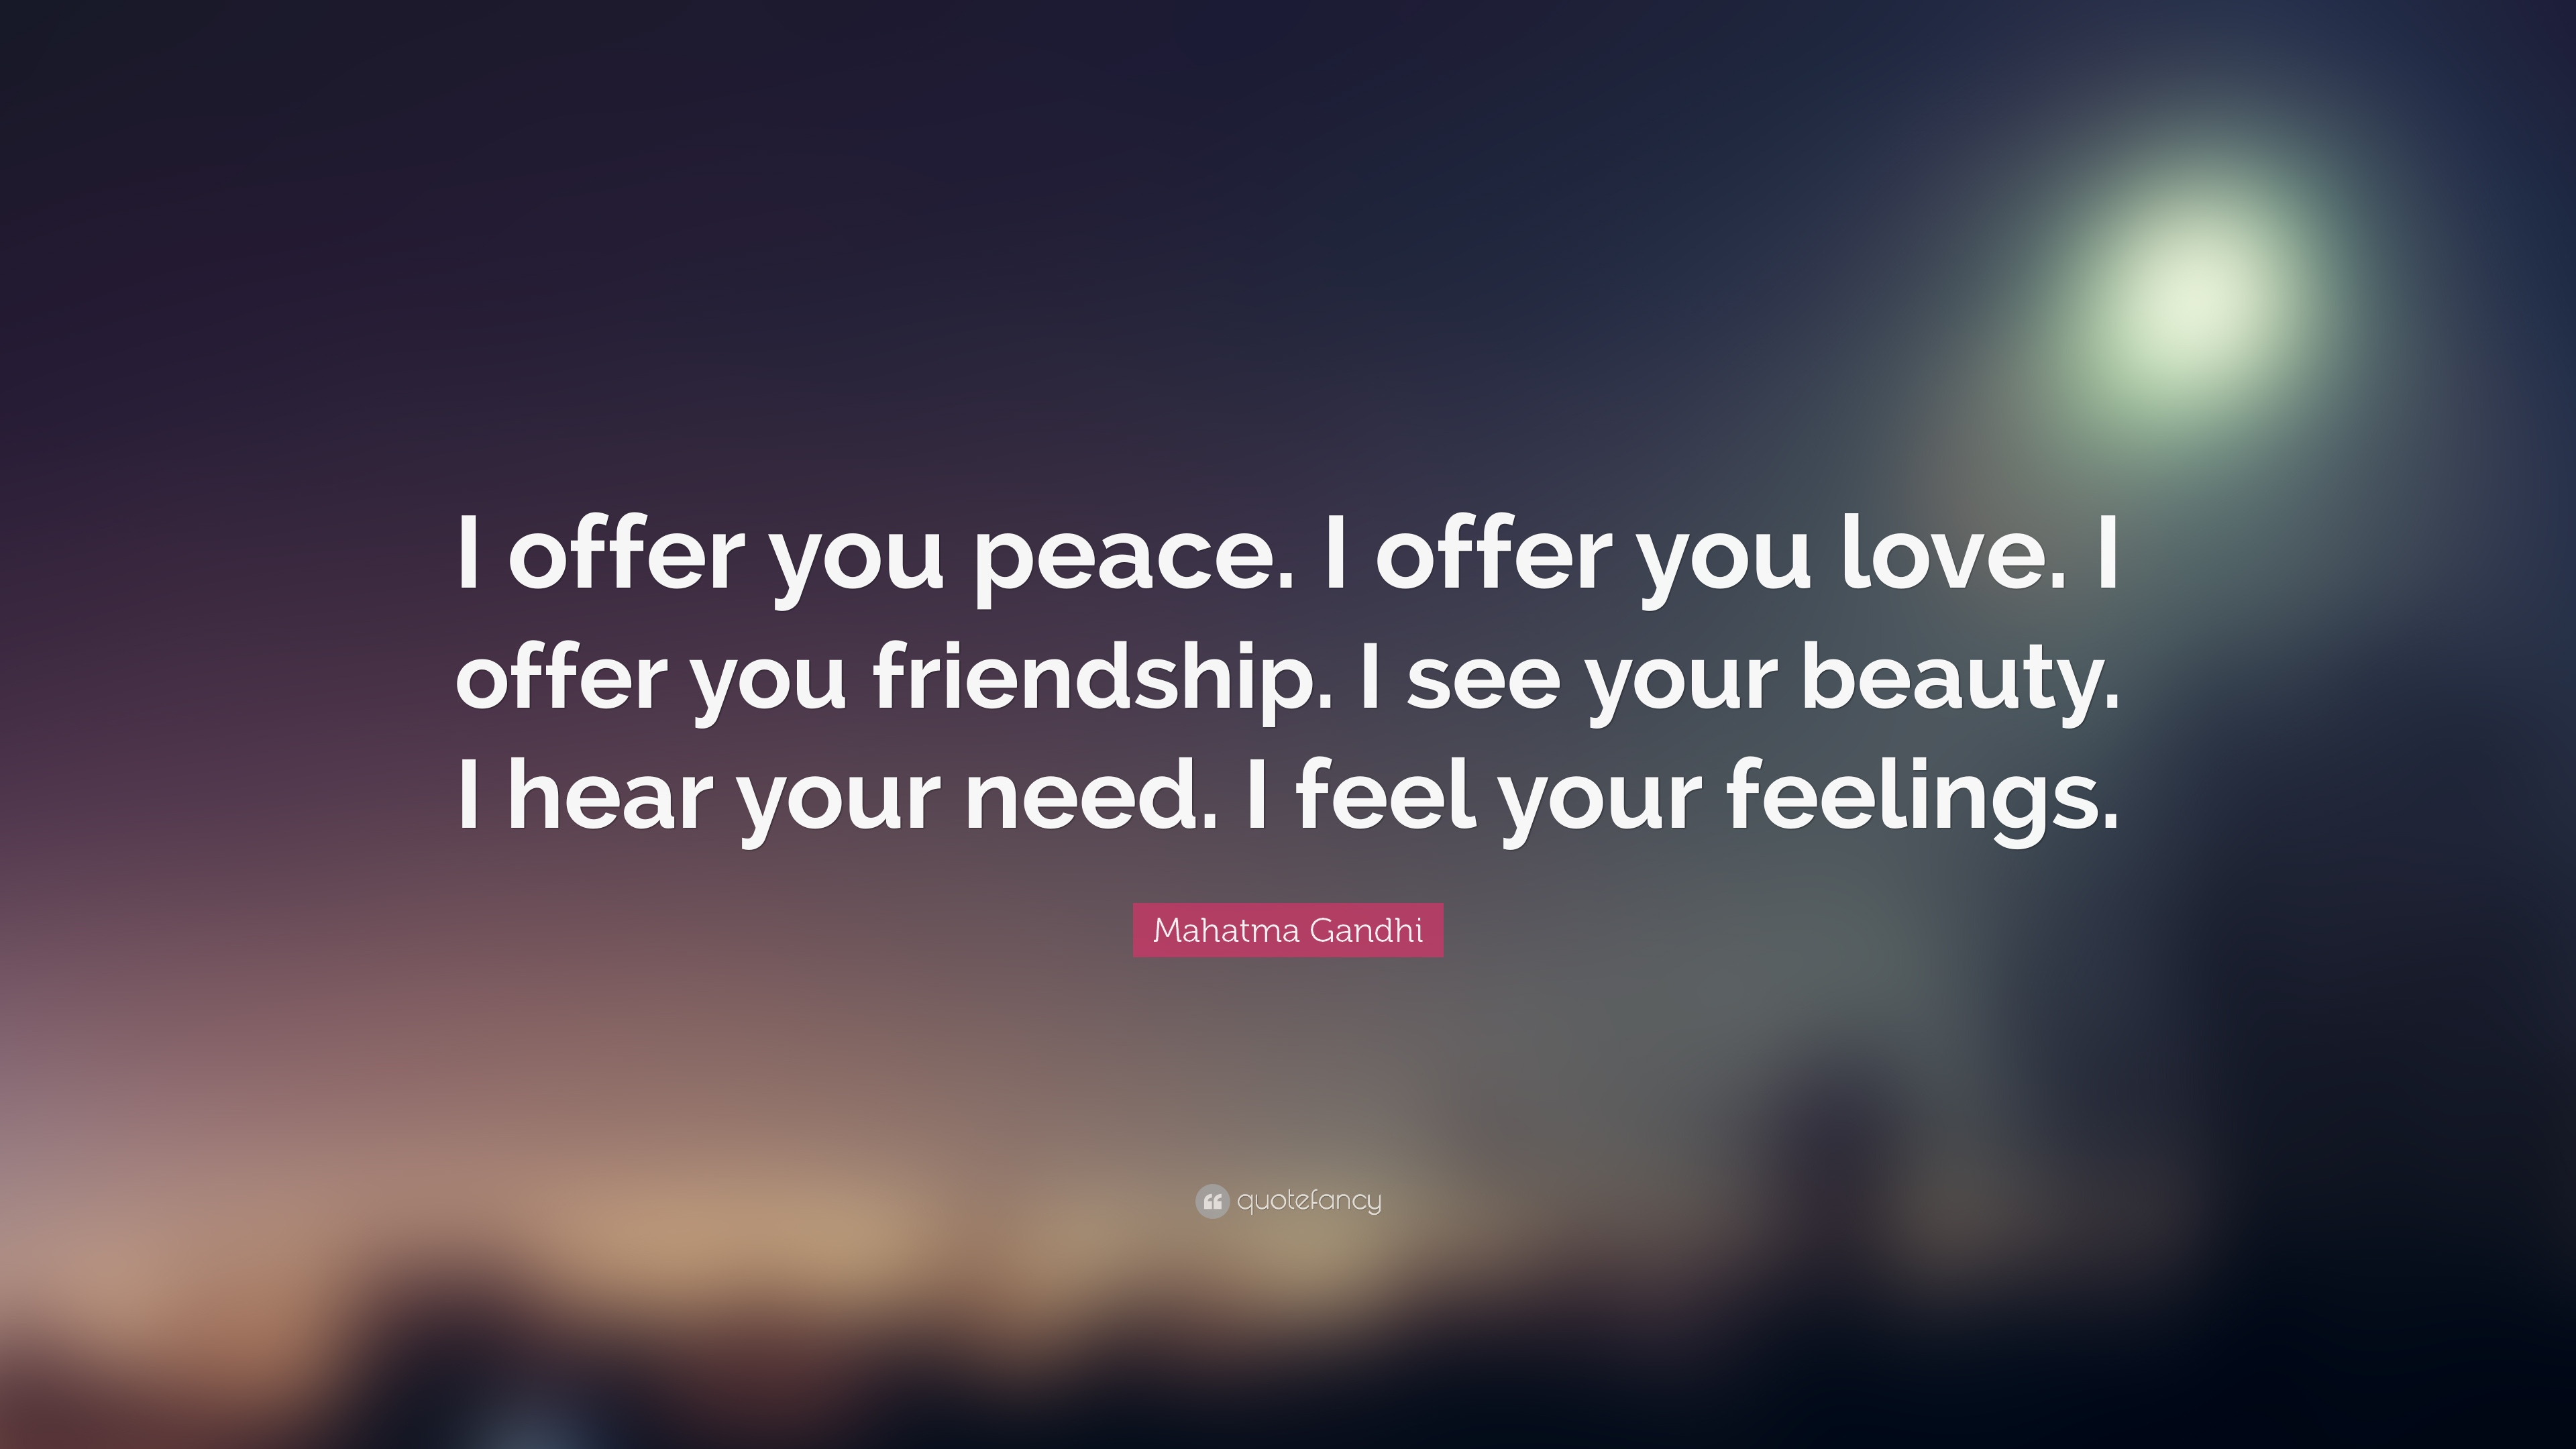 Quotes On Peace And Love Quotes About Friendship Peace Best Ideas About Peace Of Mind On